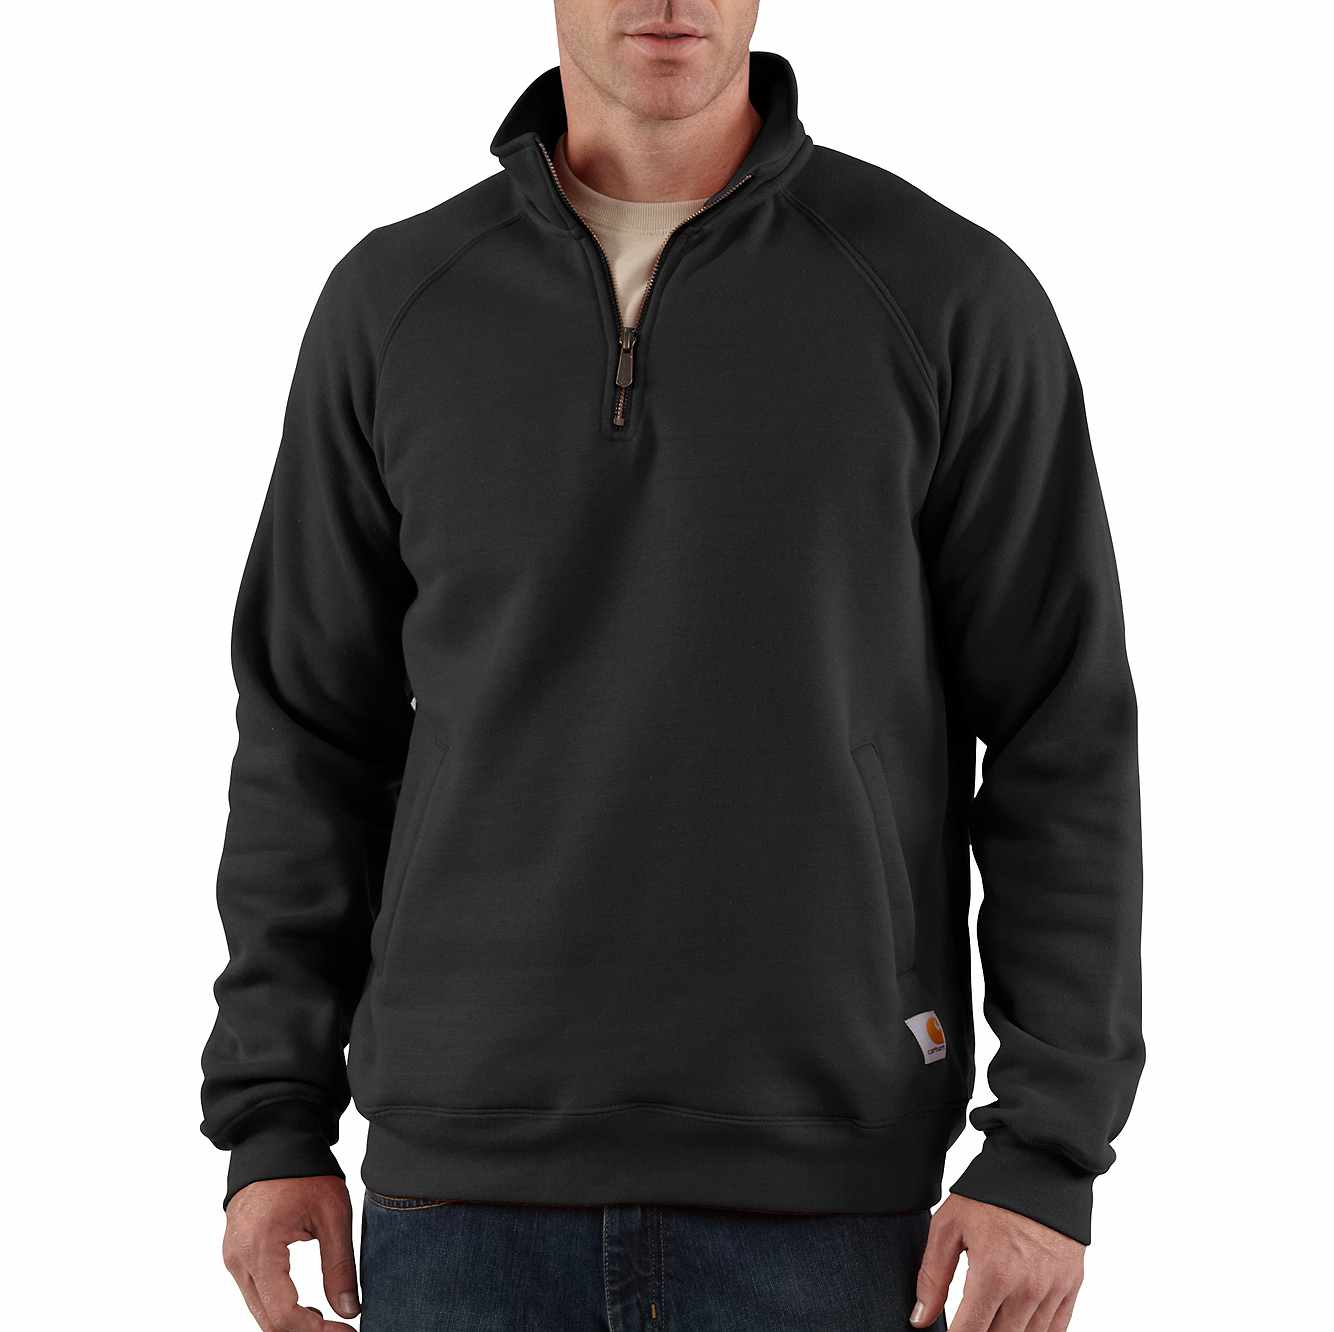 Picture of Midweight Quarter-Zip Mock-Neck Sweatshirt in Black